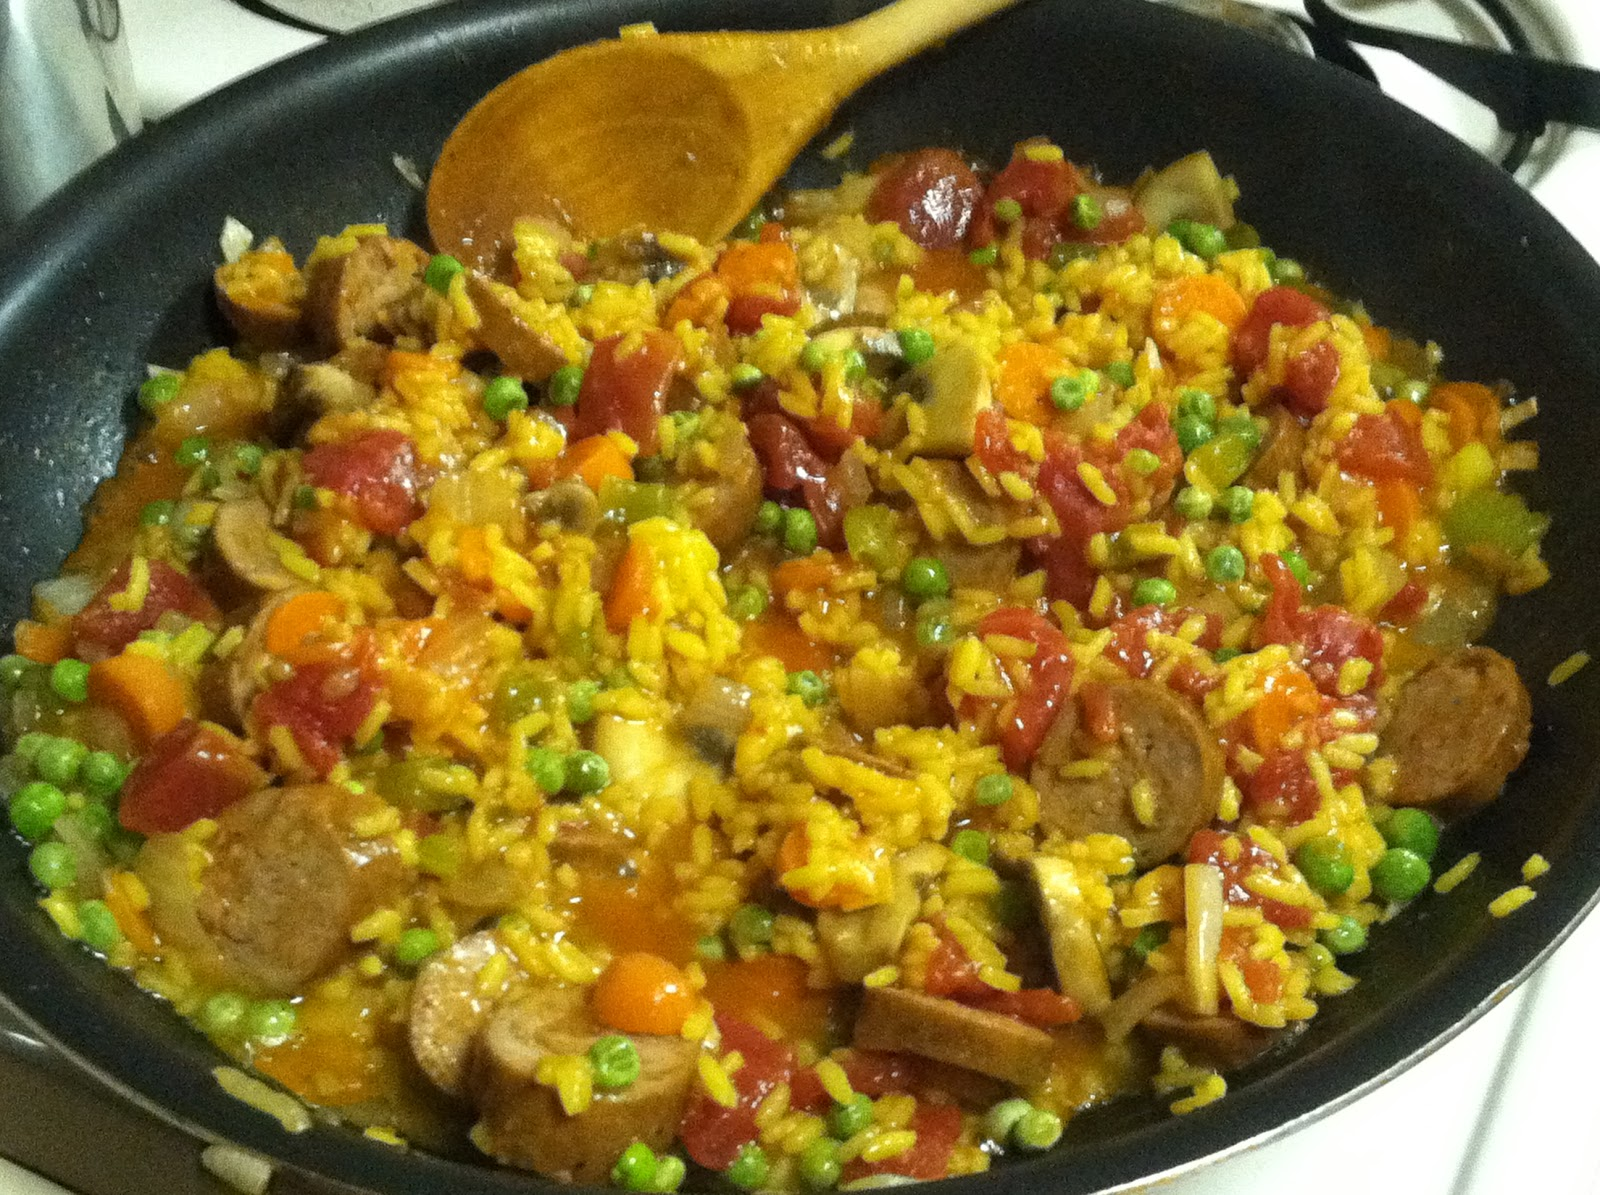 ... at a Time: Andouille Chicken Sausage with Saffron Rice and Veggies